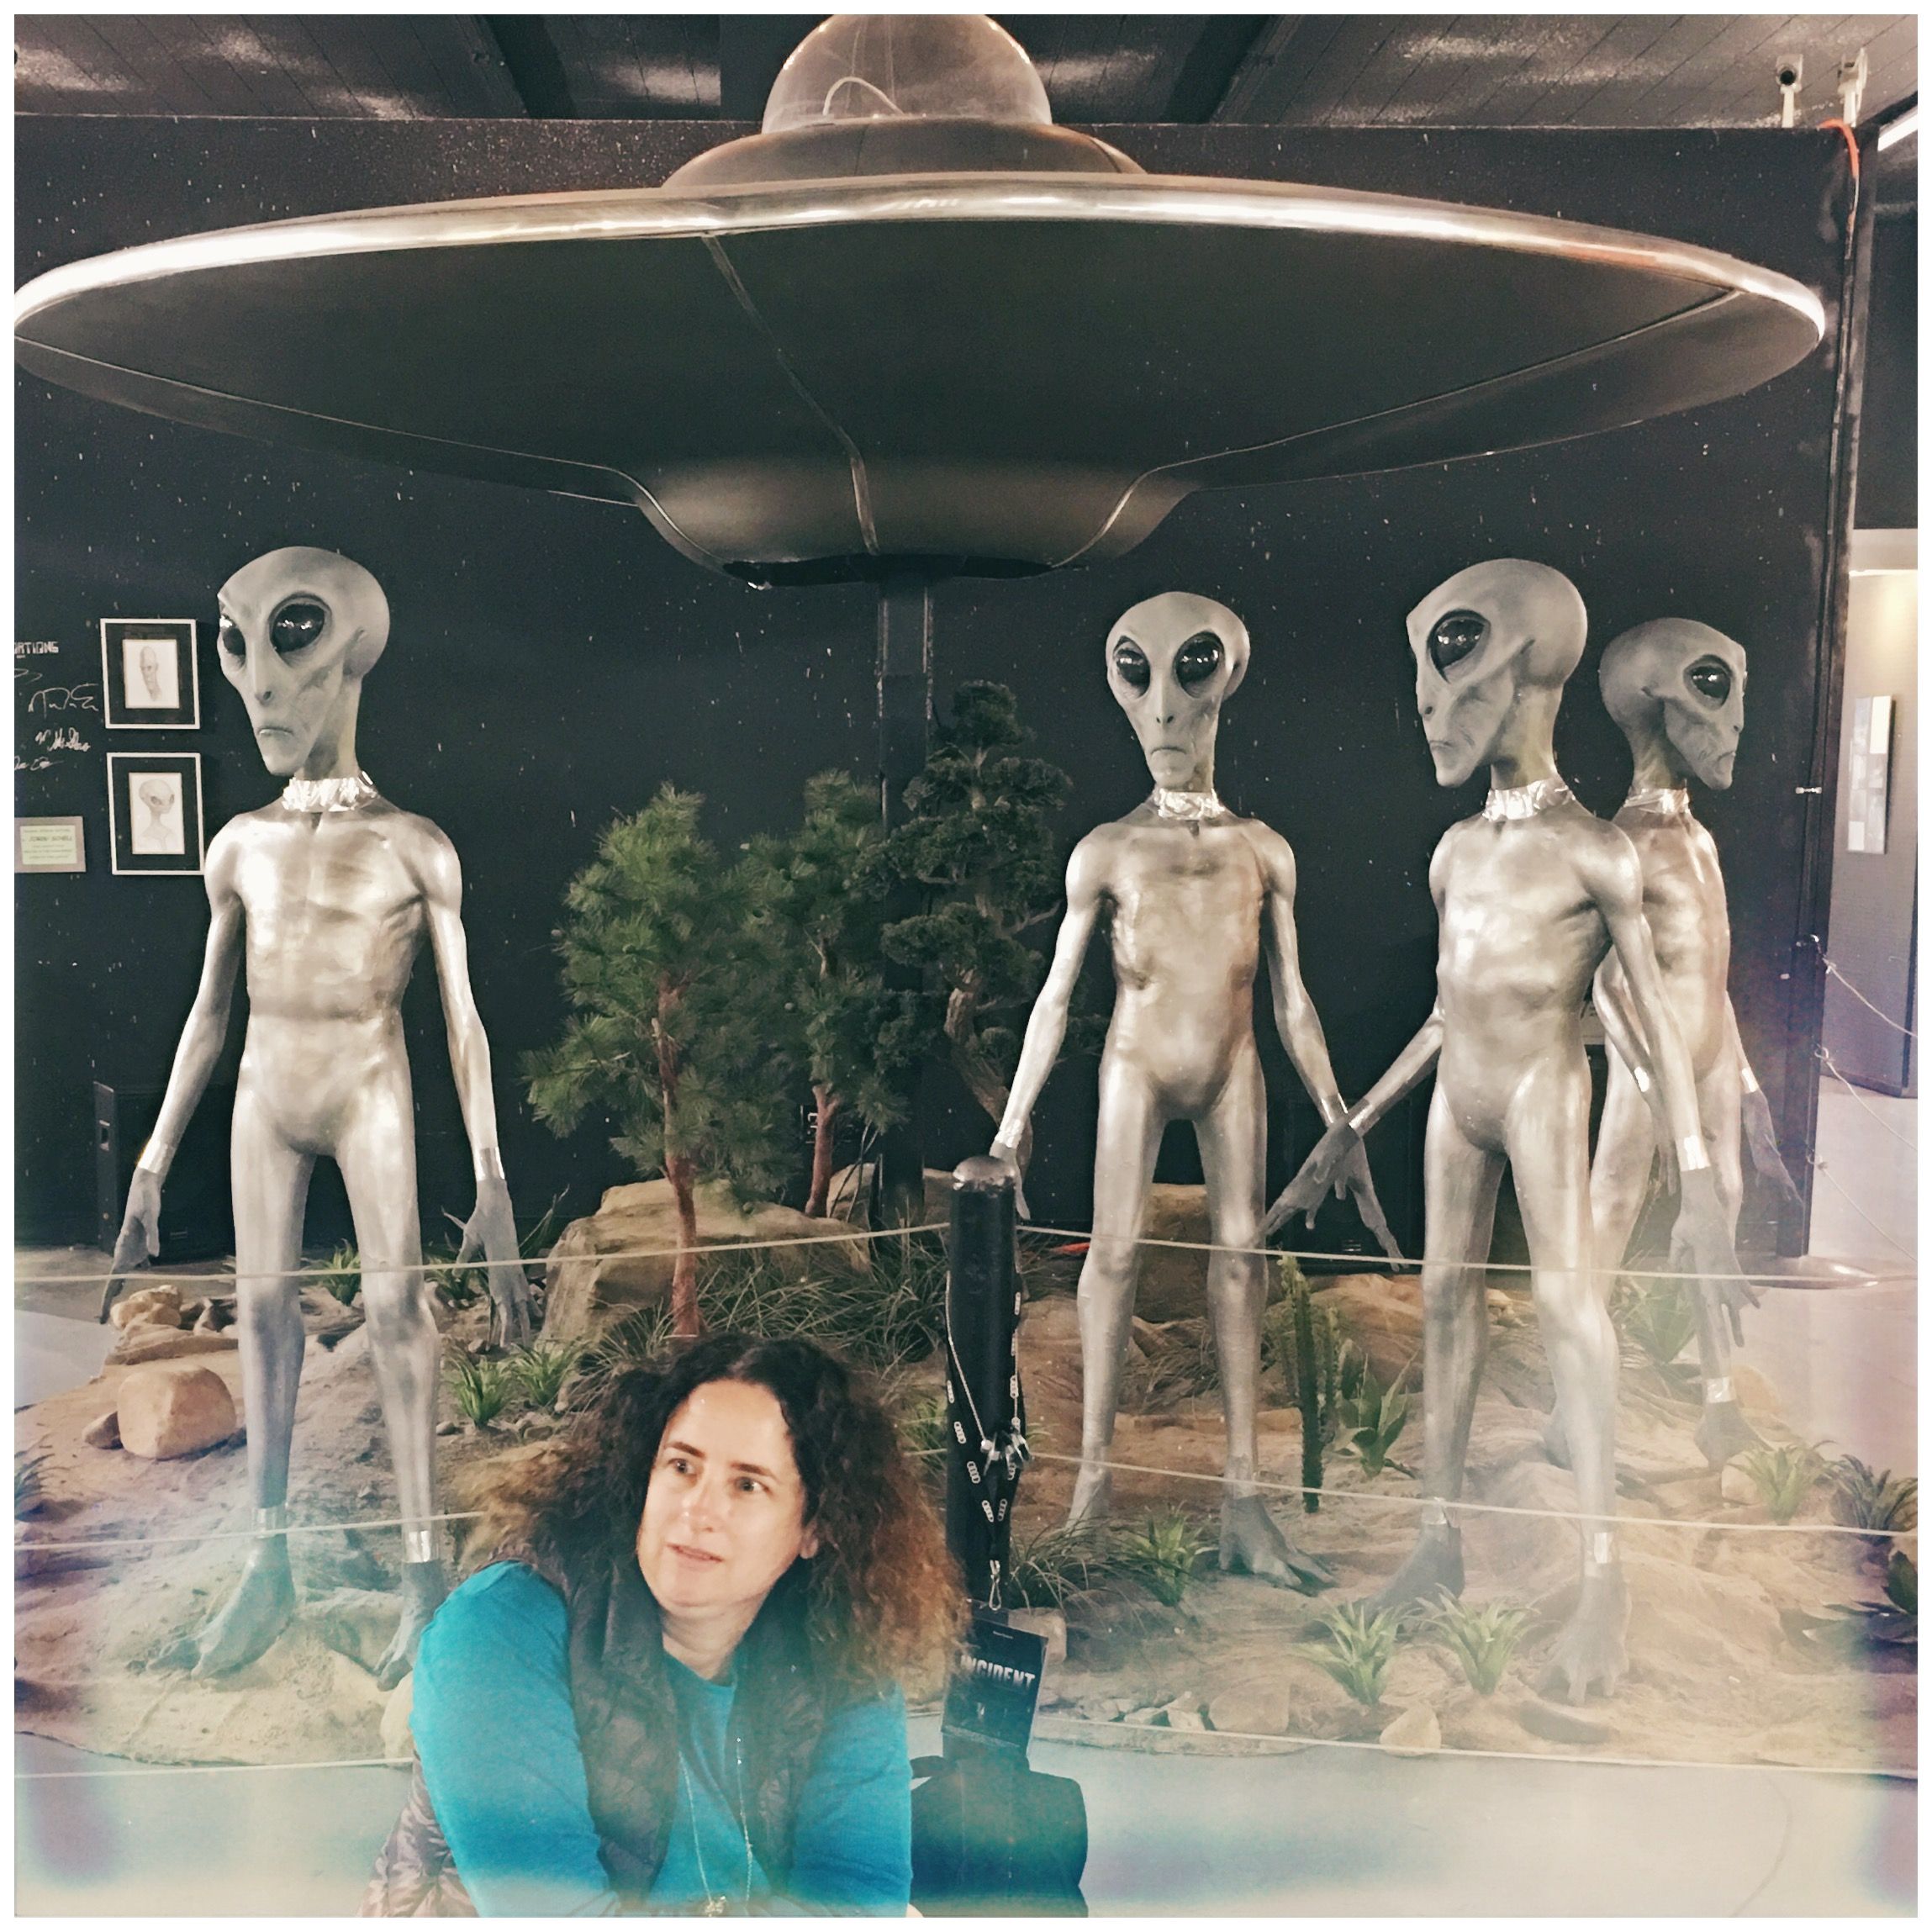 Normal day in Roswell, NM